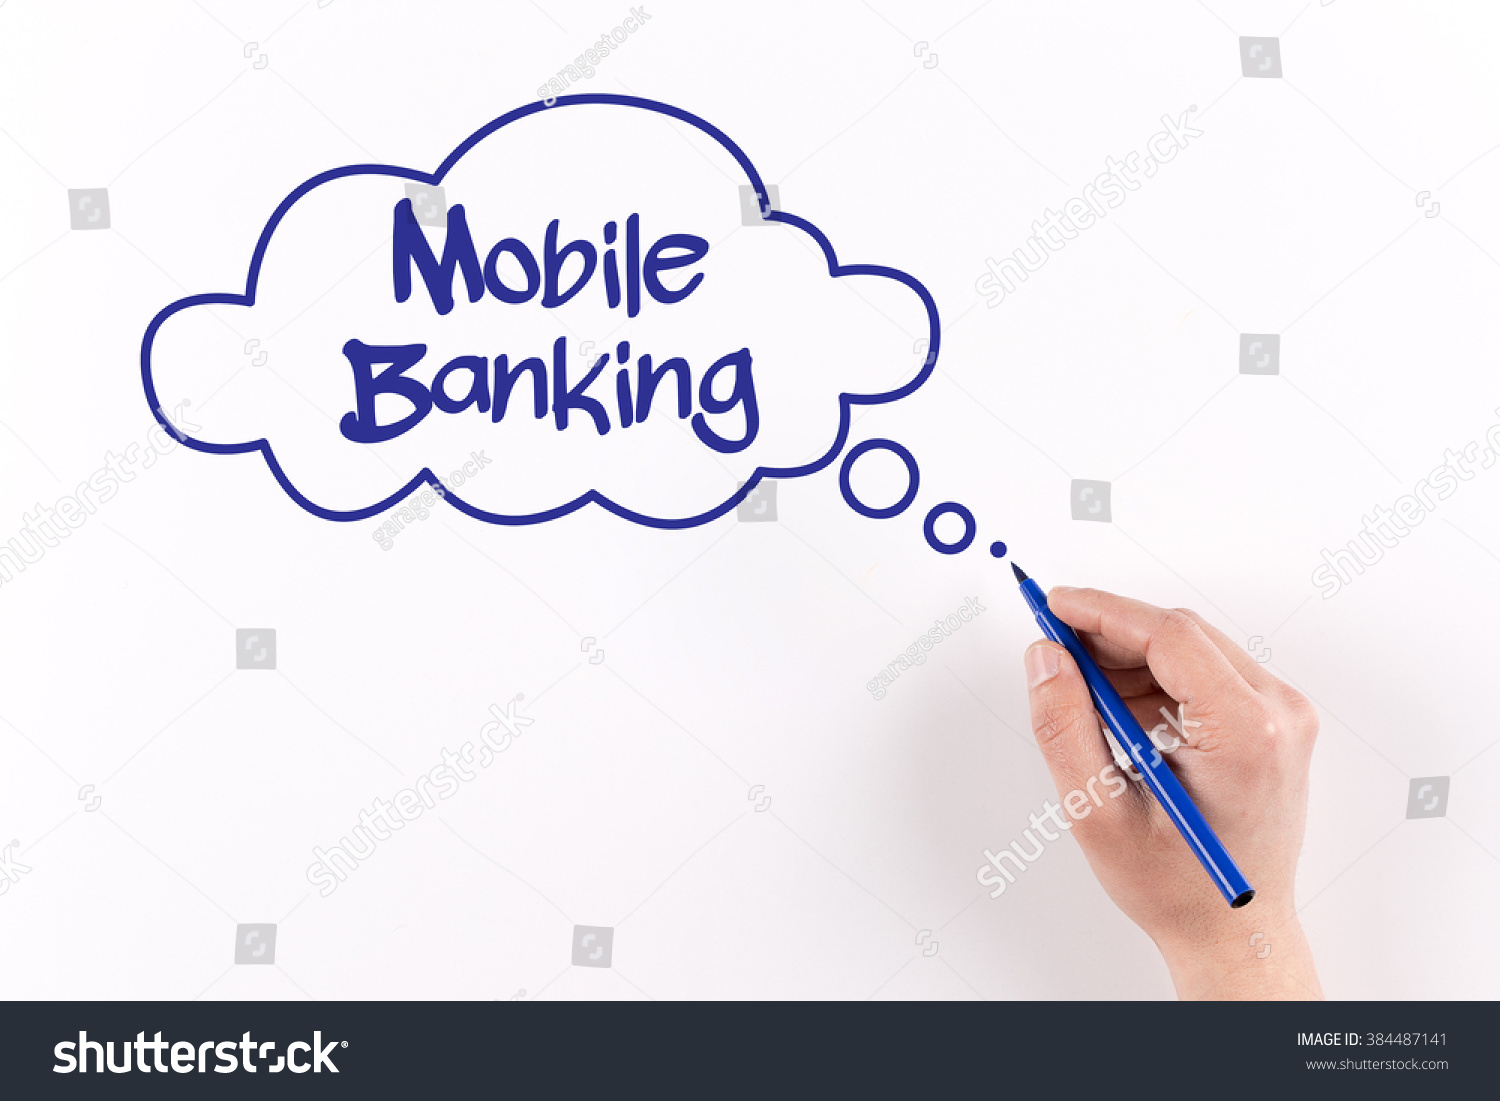 term paper on mobile banking Factors affecting adoption of mobile banking technology in kenya: a case of bank customers within nakuru municipality  the use of paper-based payment instruments will  long-term plan for national transformation, vision 2030, identifies it as one of six priority.